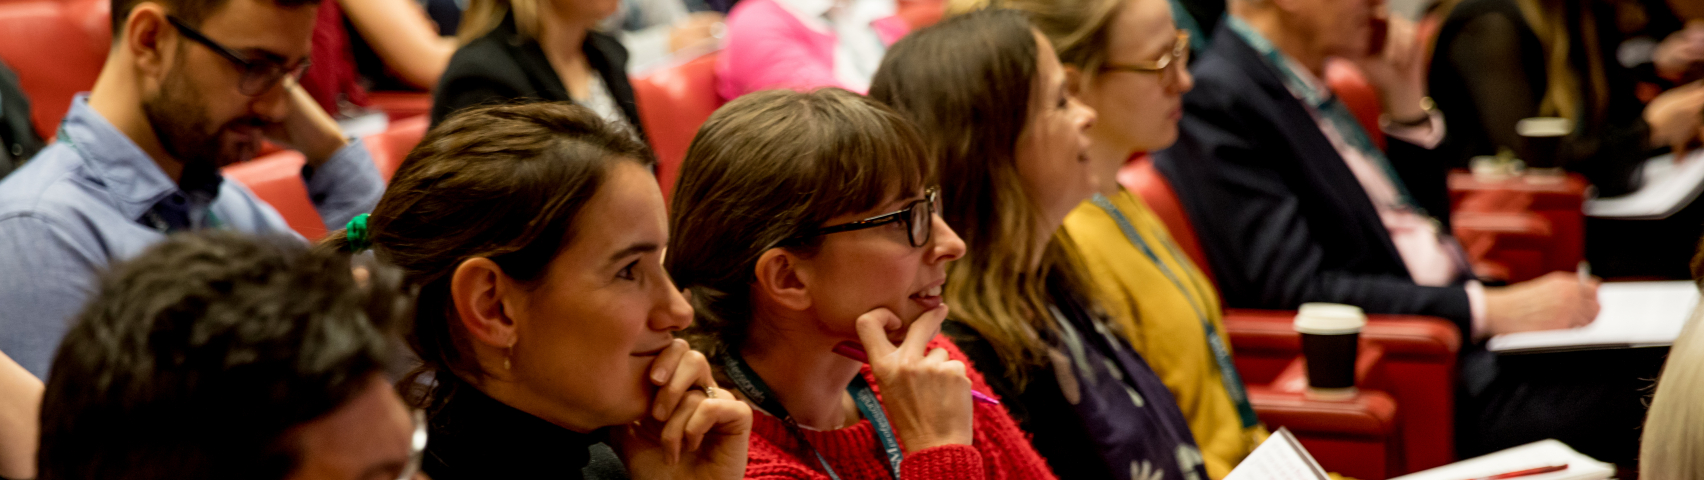 Delegates in audience at conference